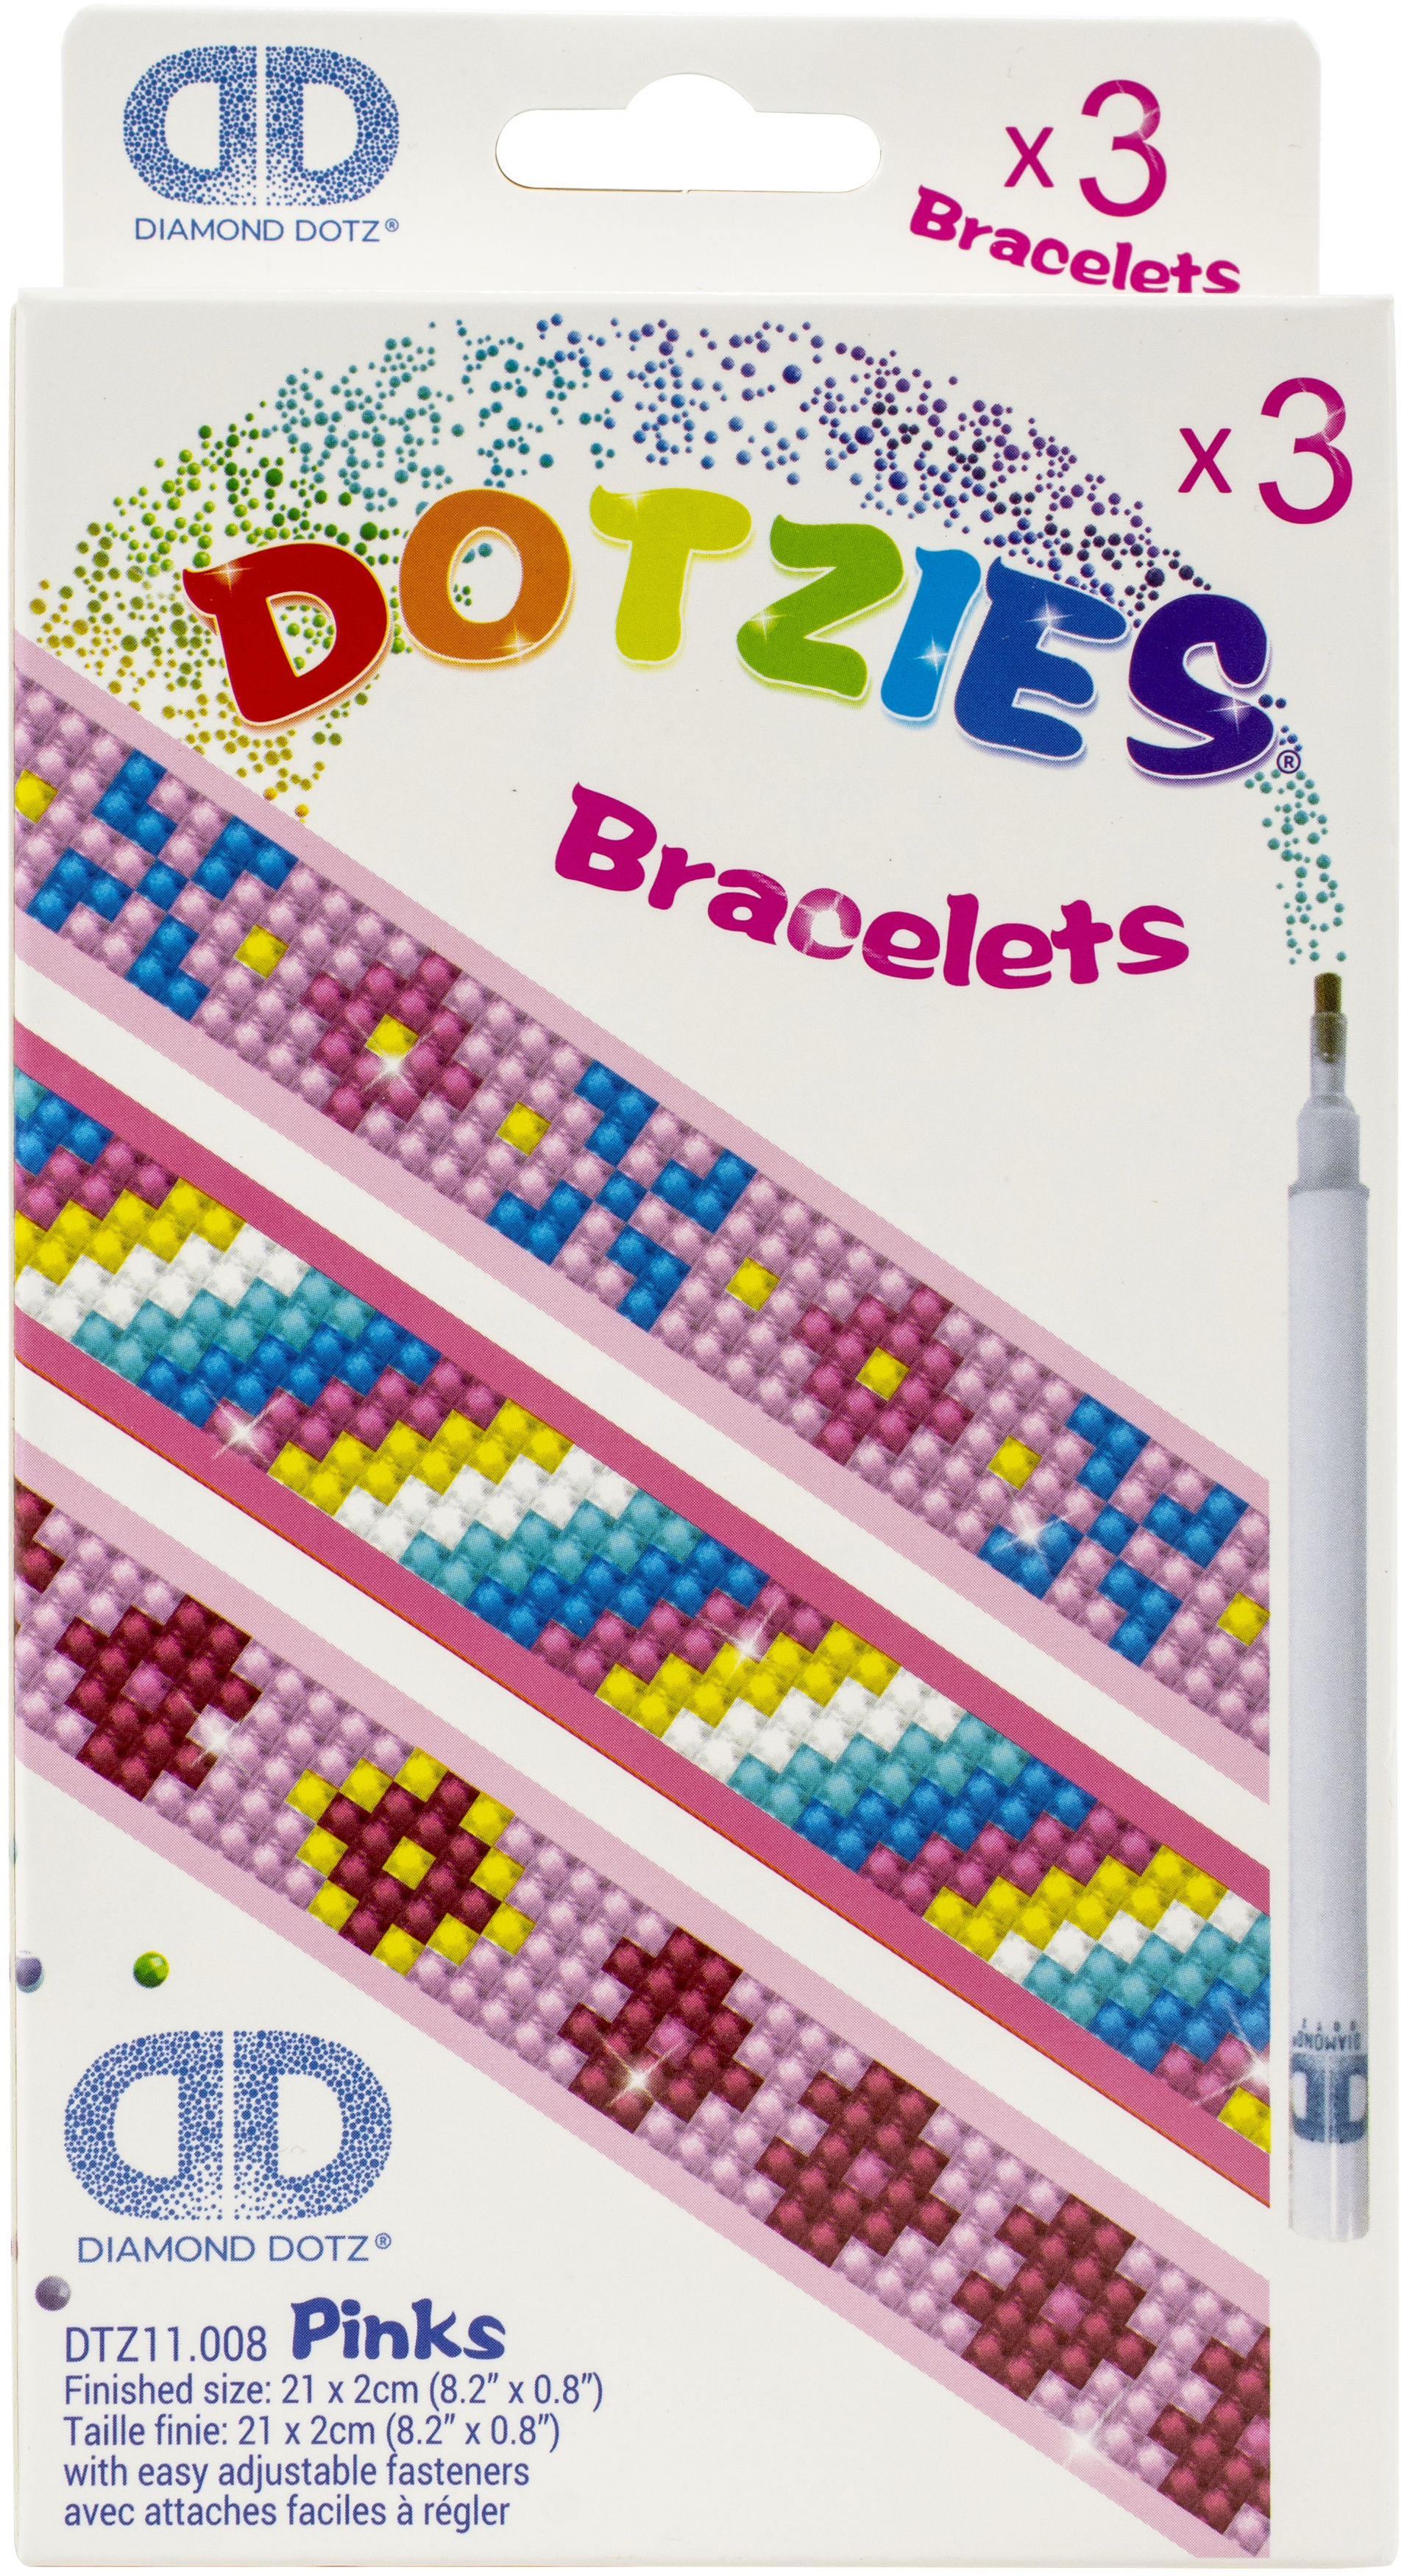 Diamond Dotz DOTZIES Bracelets Facet Art Kit 1X9-Assorted Pinks 3/Pkg